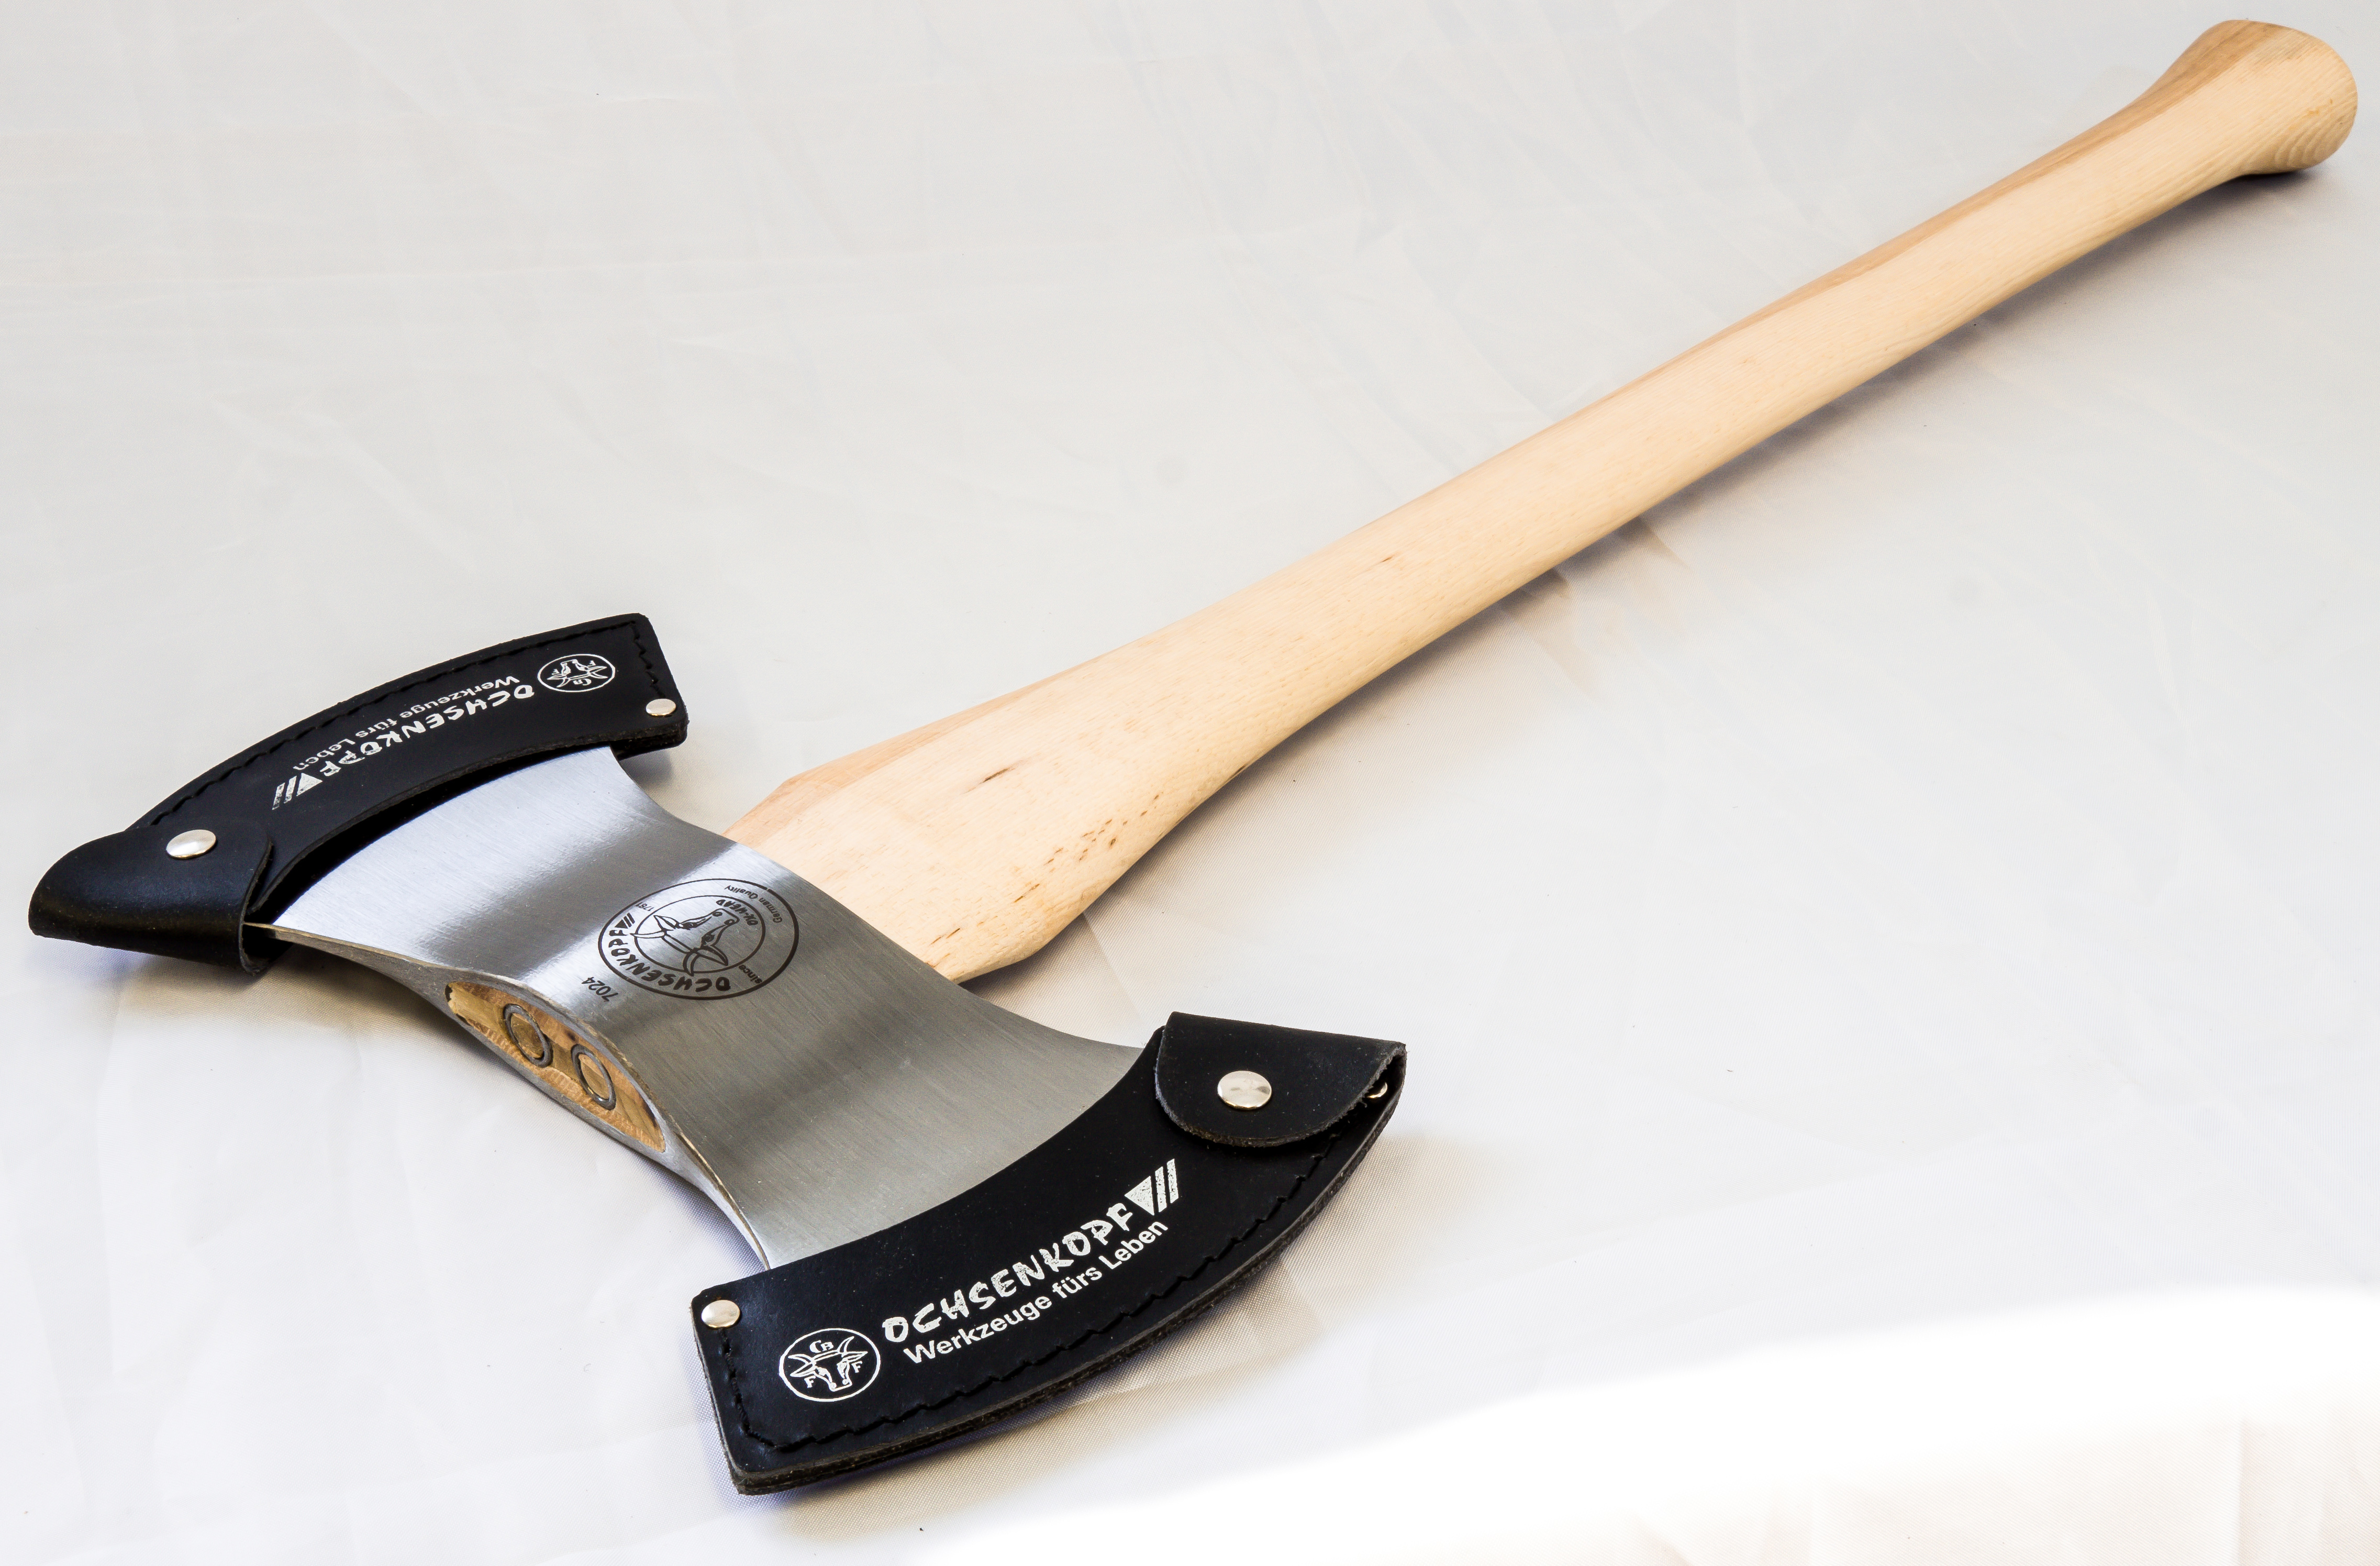 Ox-Head Competition Axe—Double Bit Throwing Axe HJ-OX-18-1200